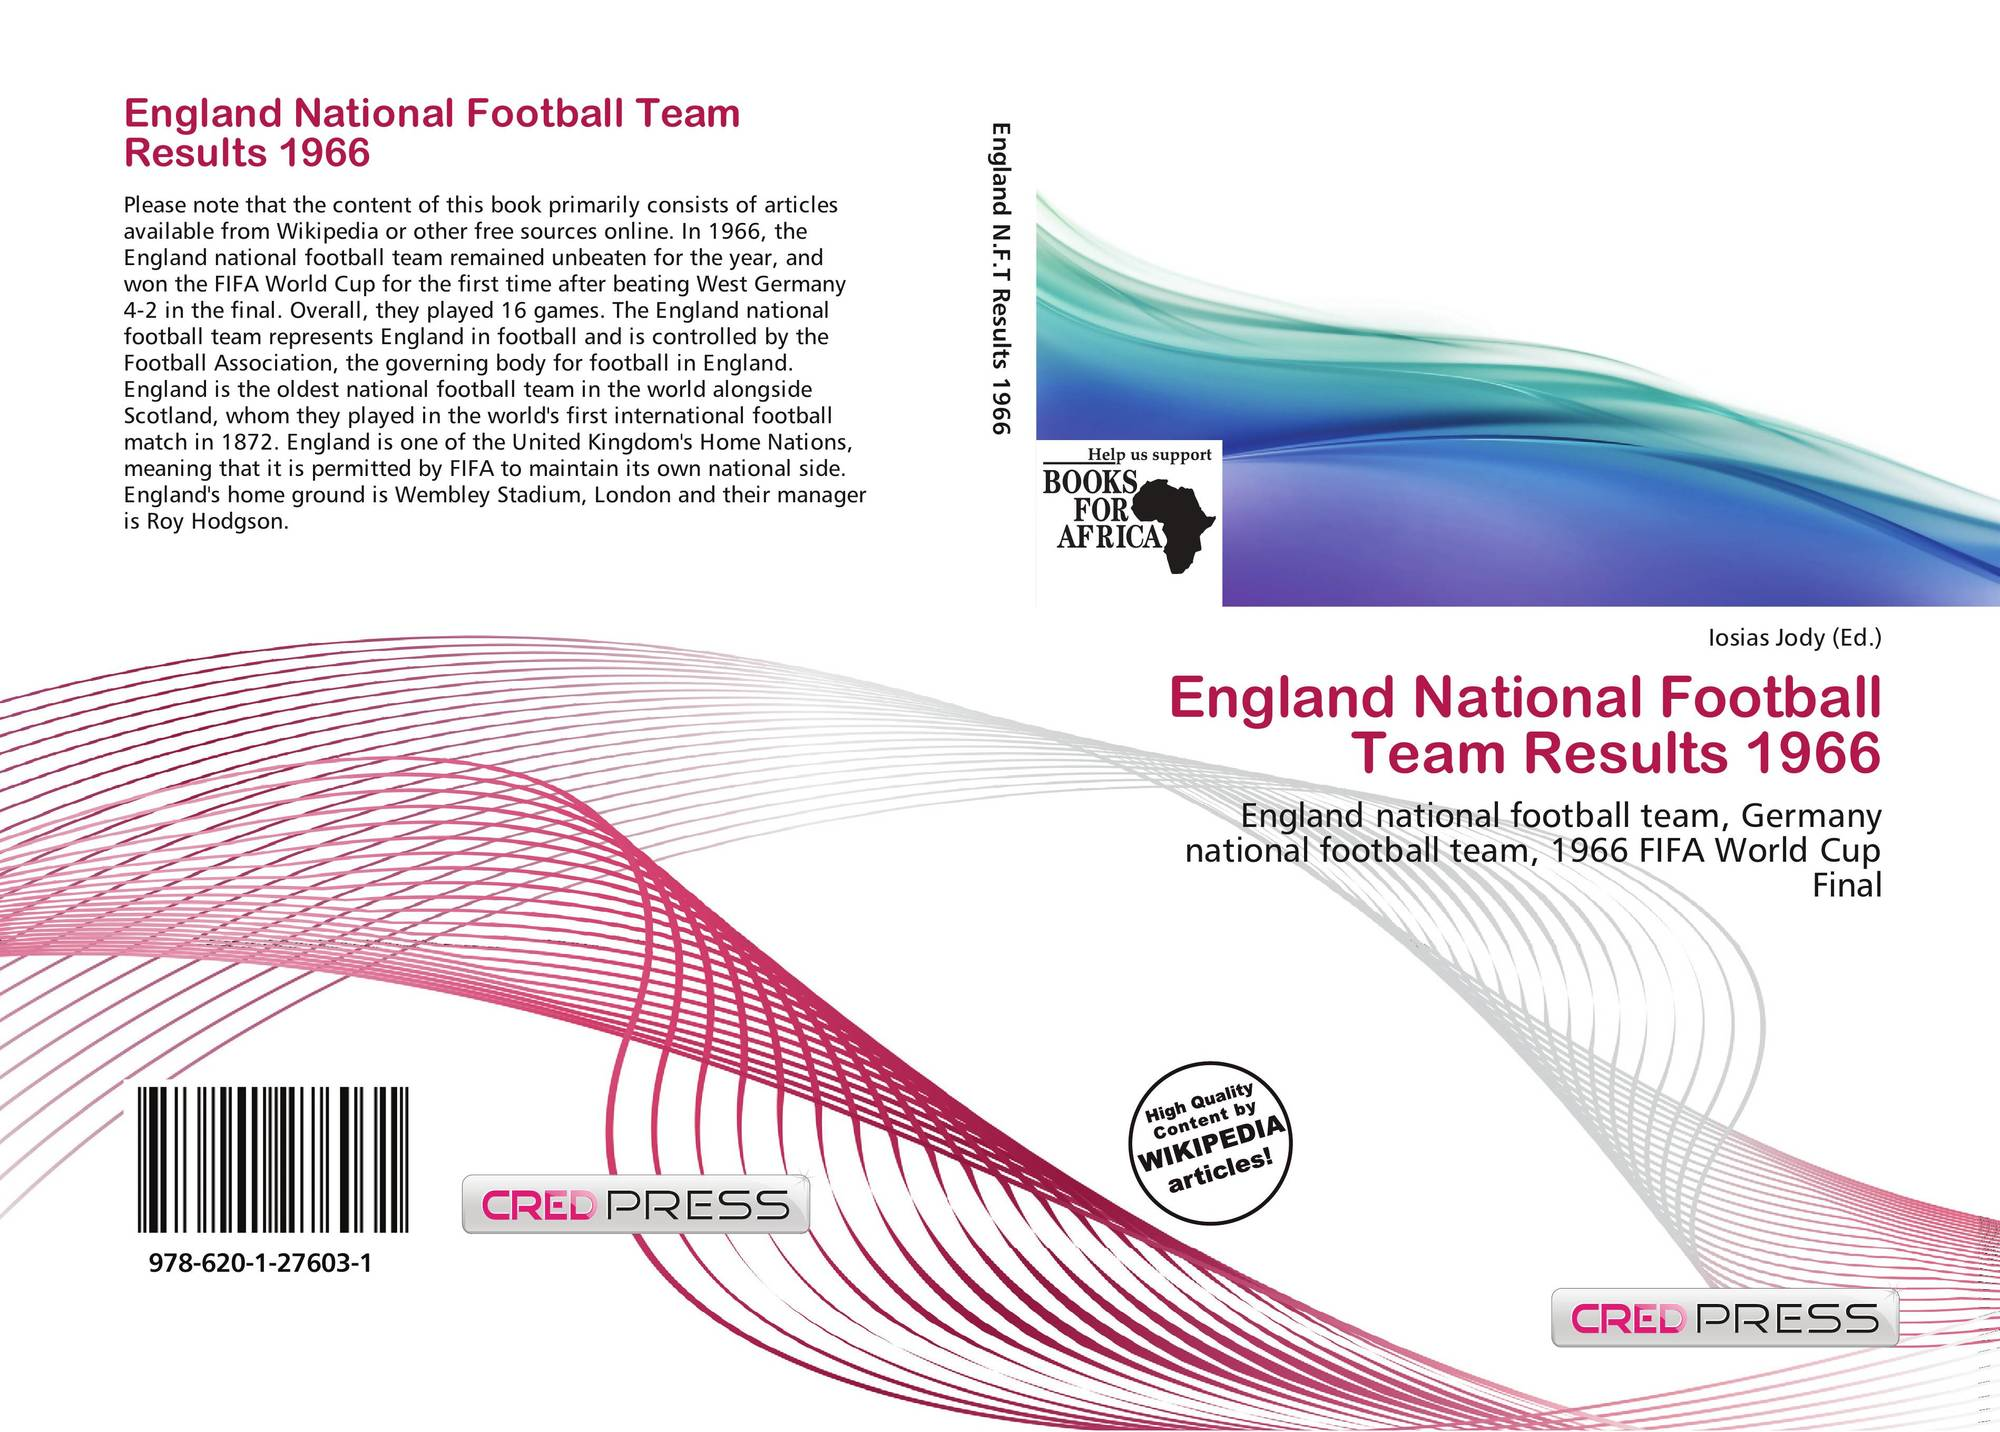 England National Football Team Results 1966, 978-620-1-27603